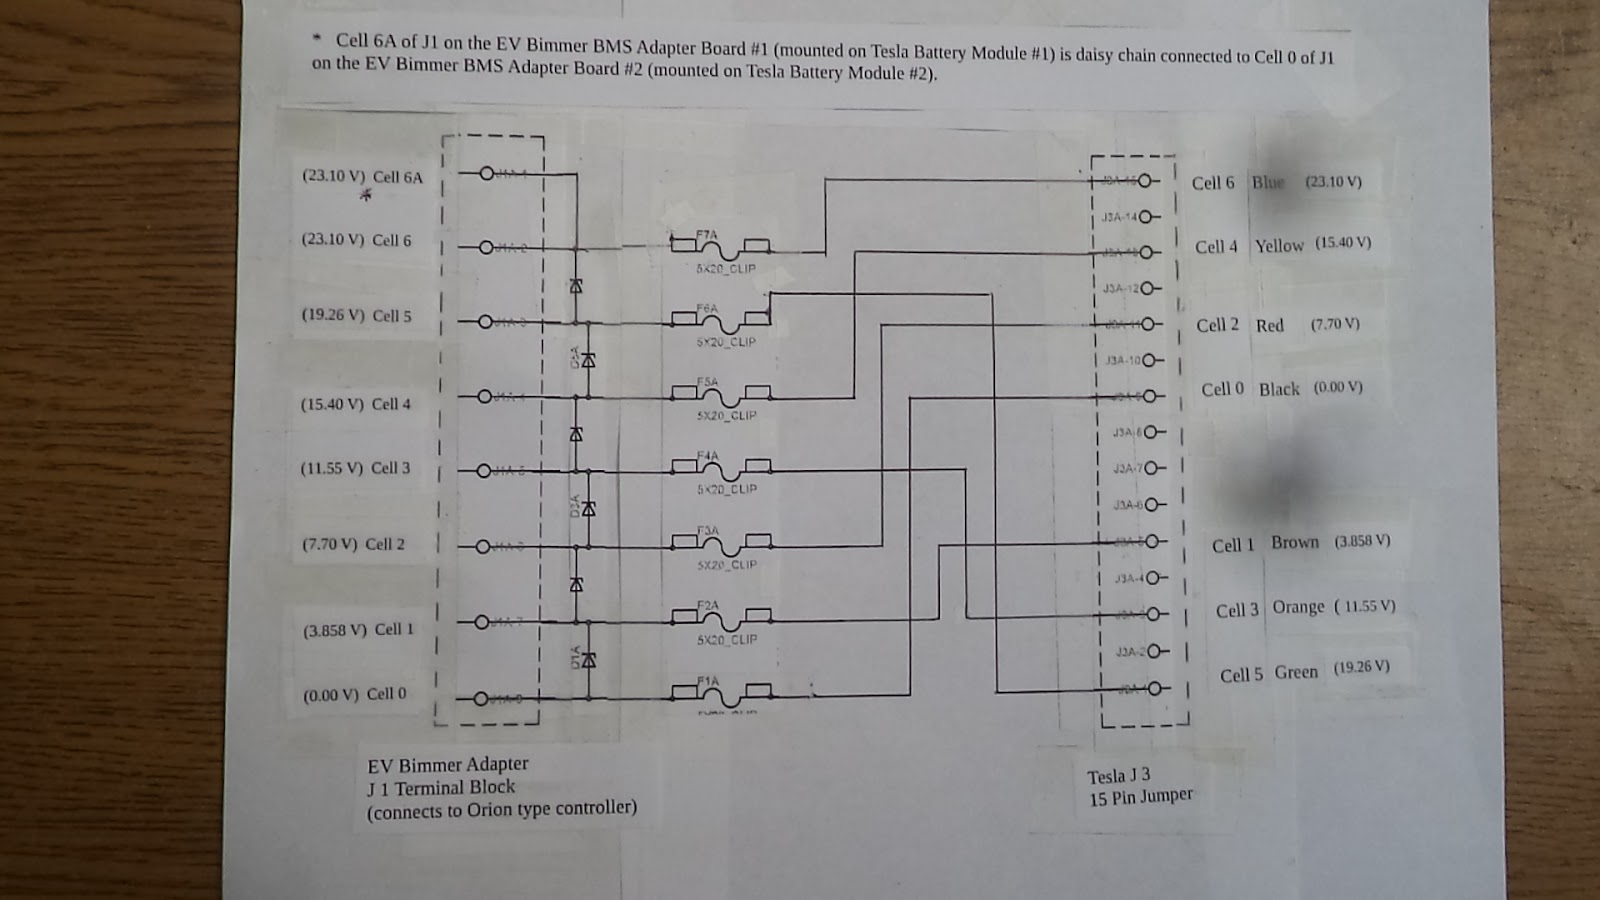 Williams Ev Bimmer 325i May 2018 Tesla Wire Harness Dsc06336 Image Of The Preliminary Wiring Diagram That Connects Orion To Module Number 1